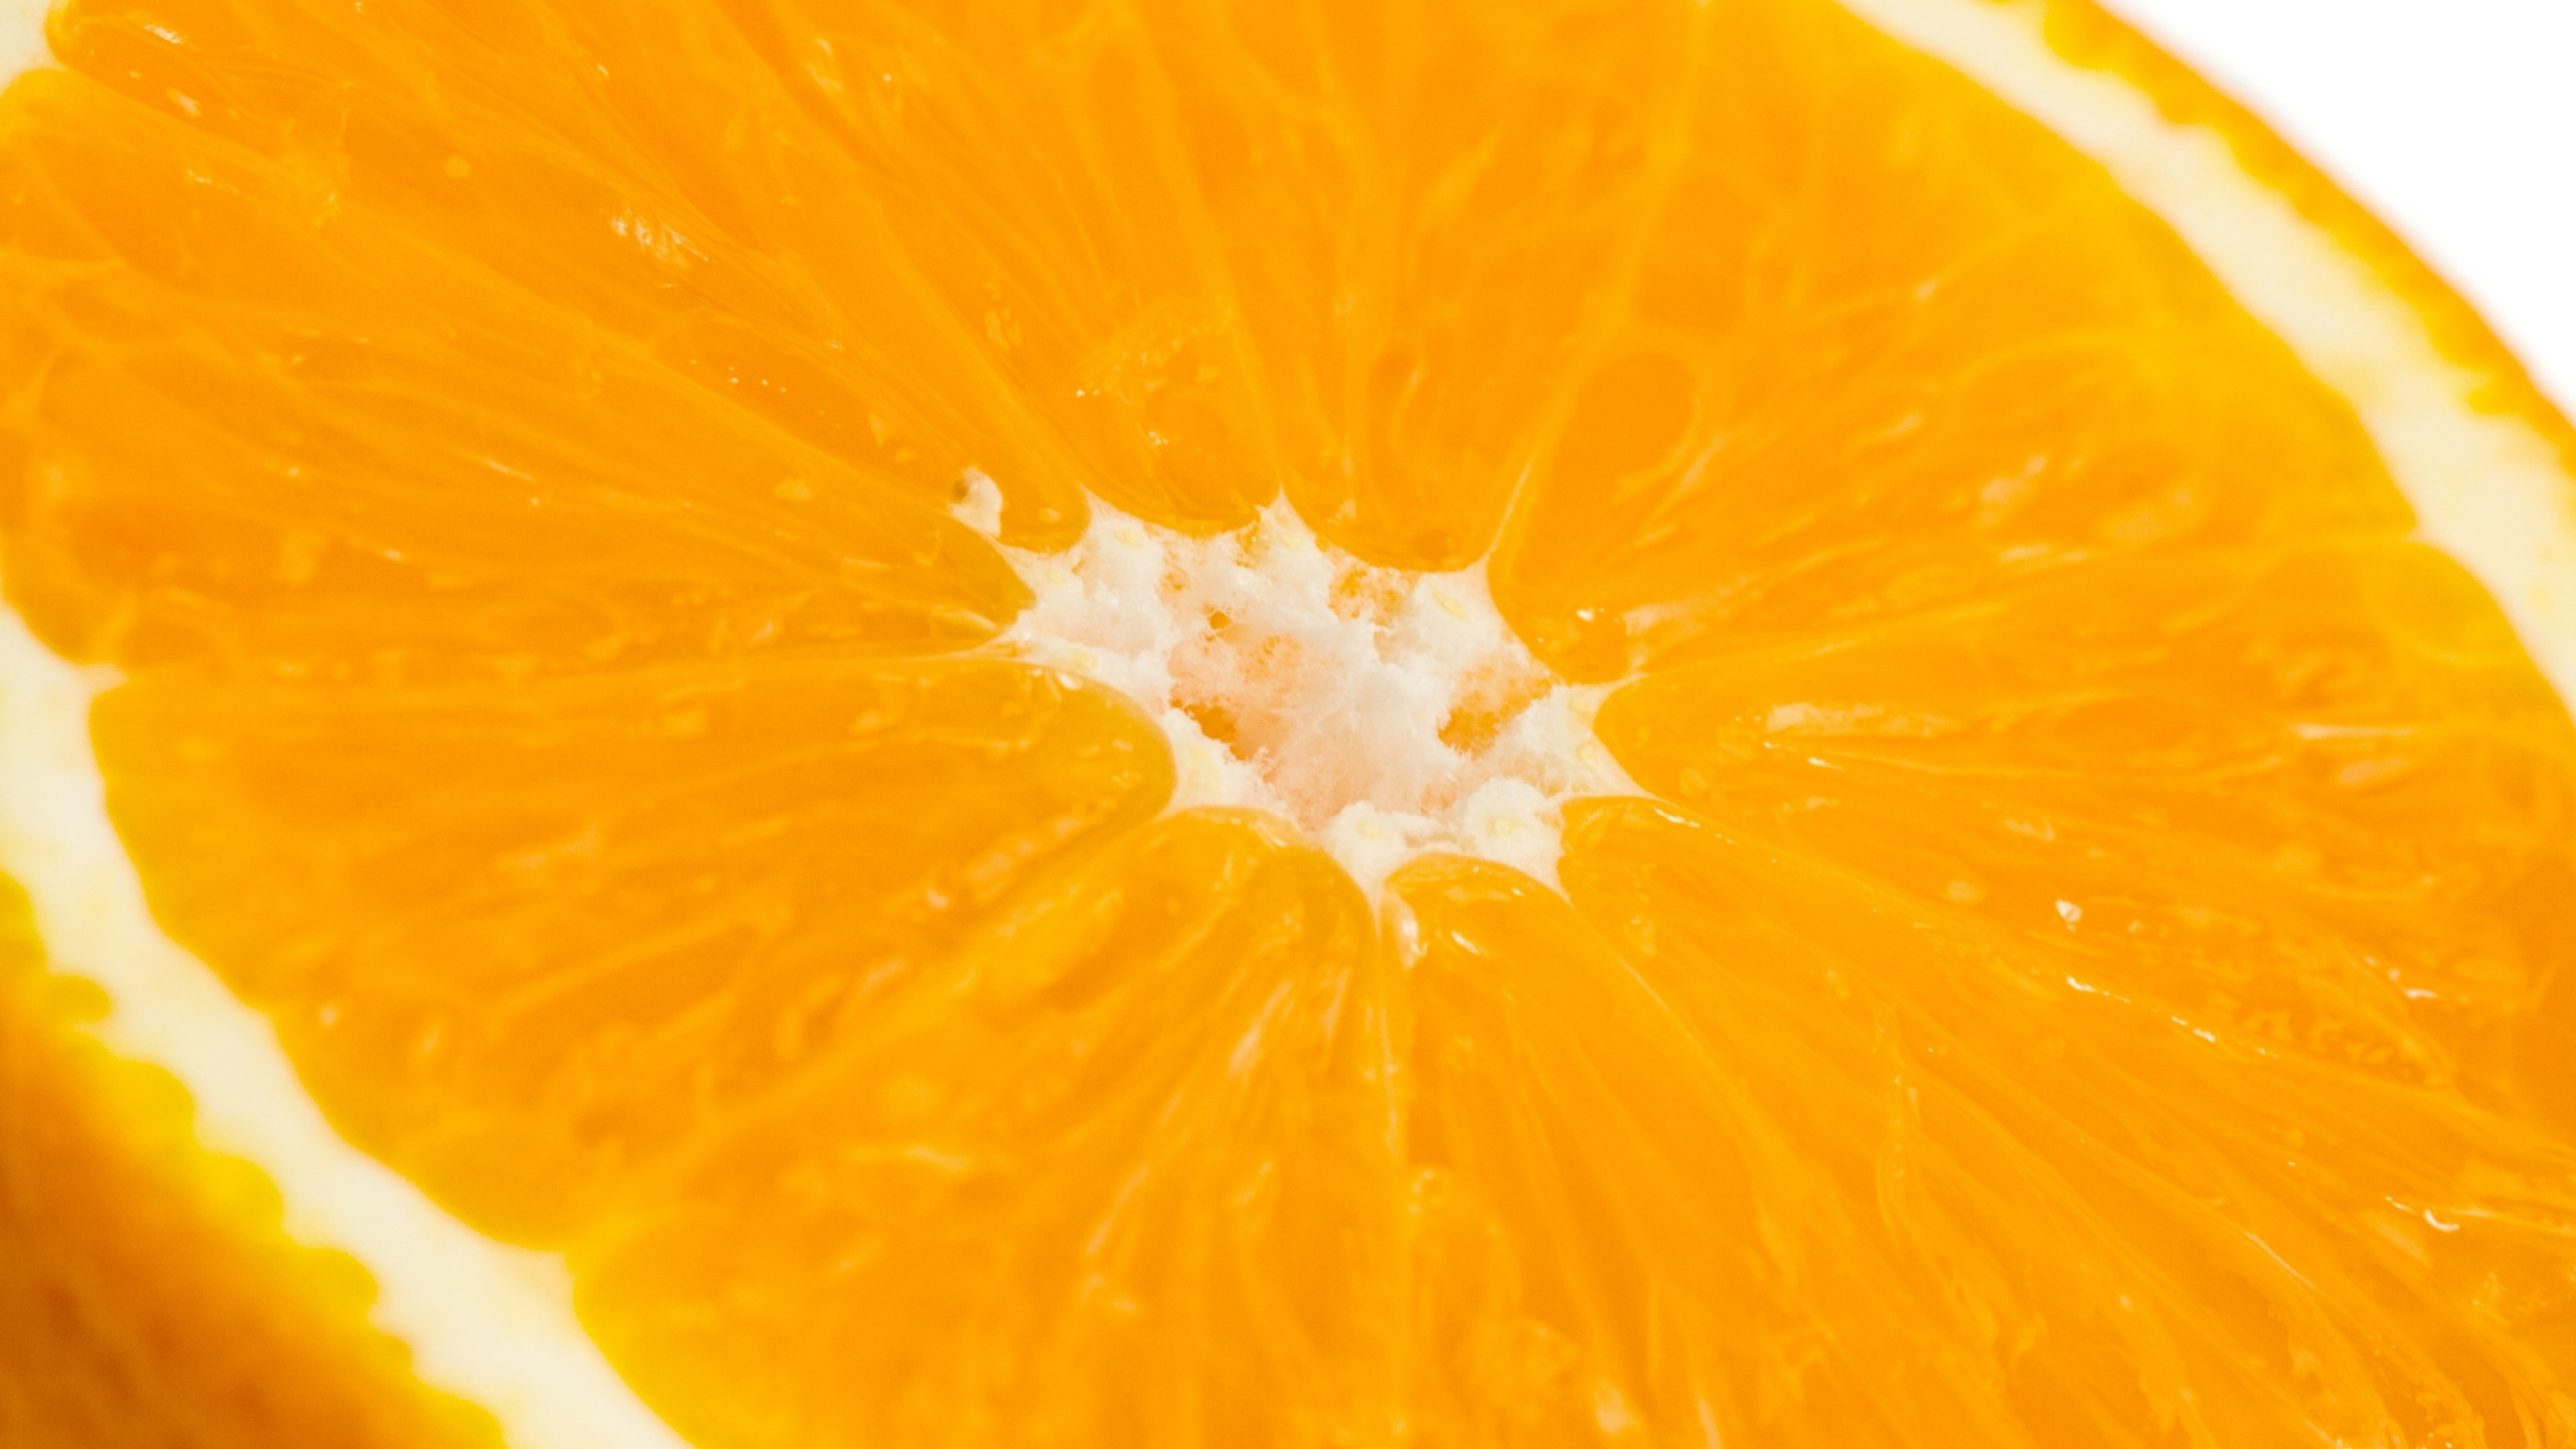 orange_citrus_fruit_90386_3840x2160